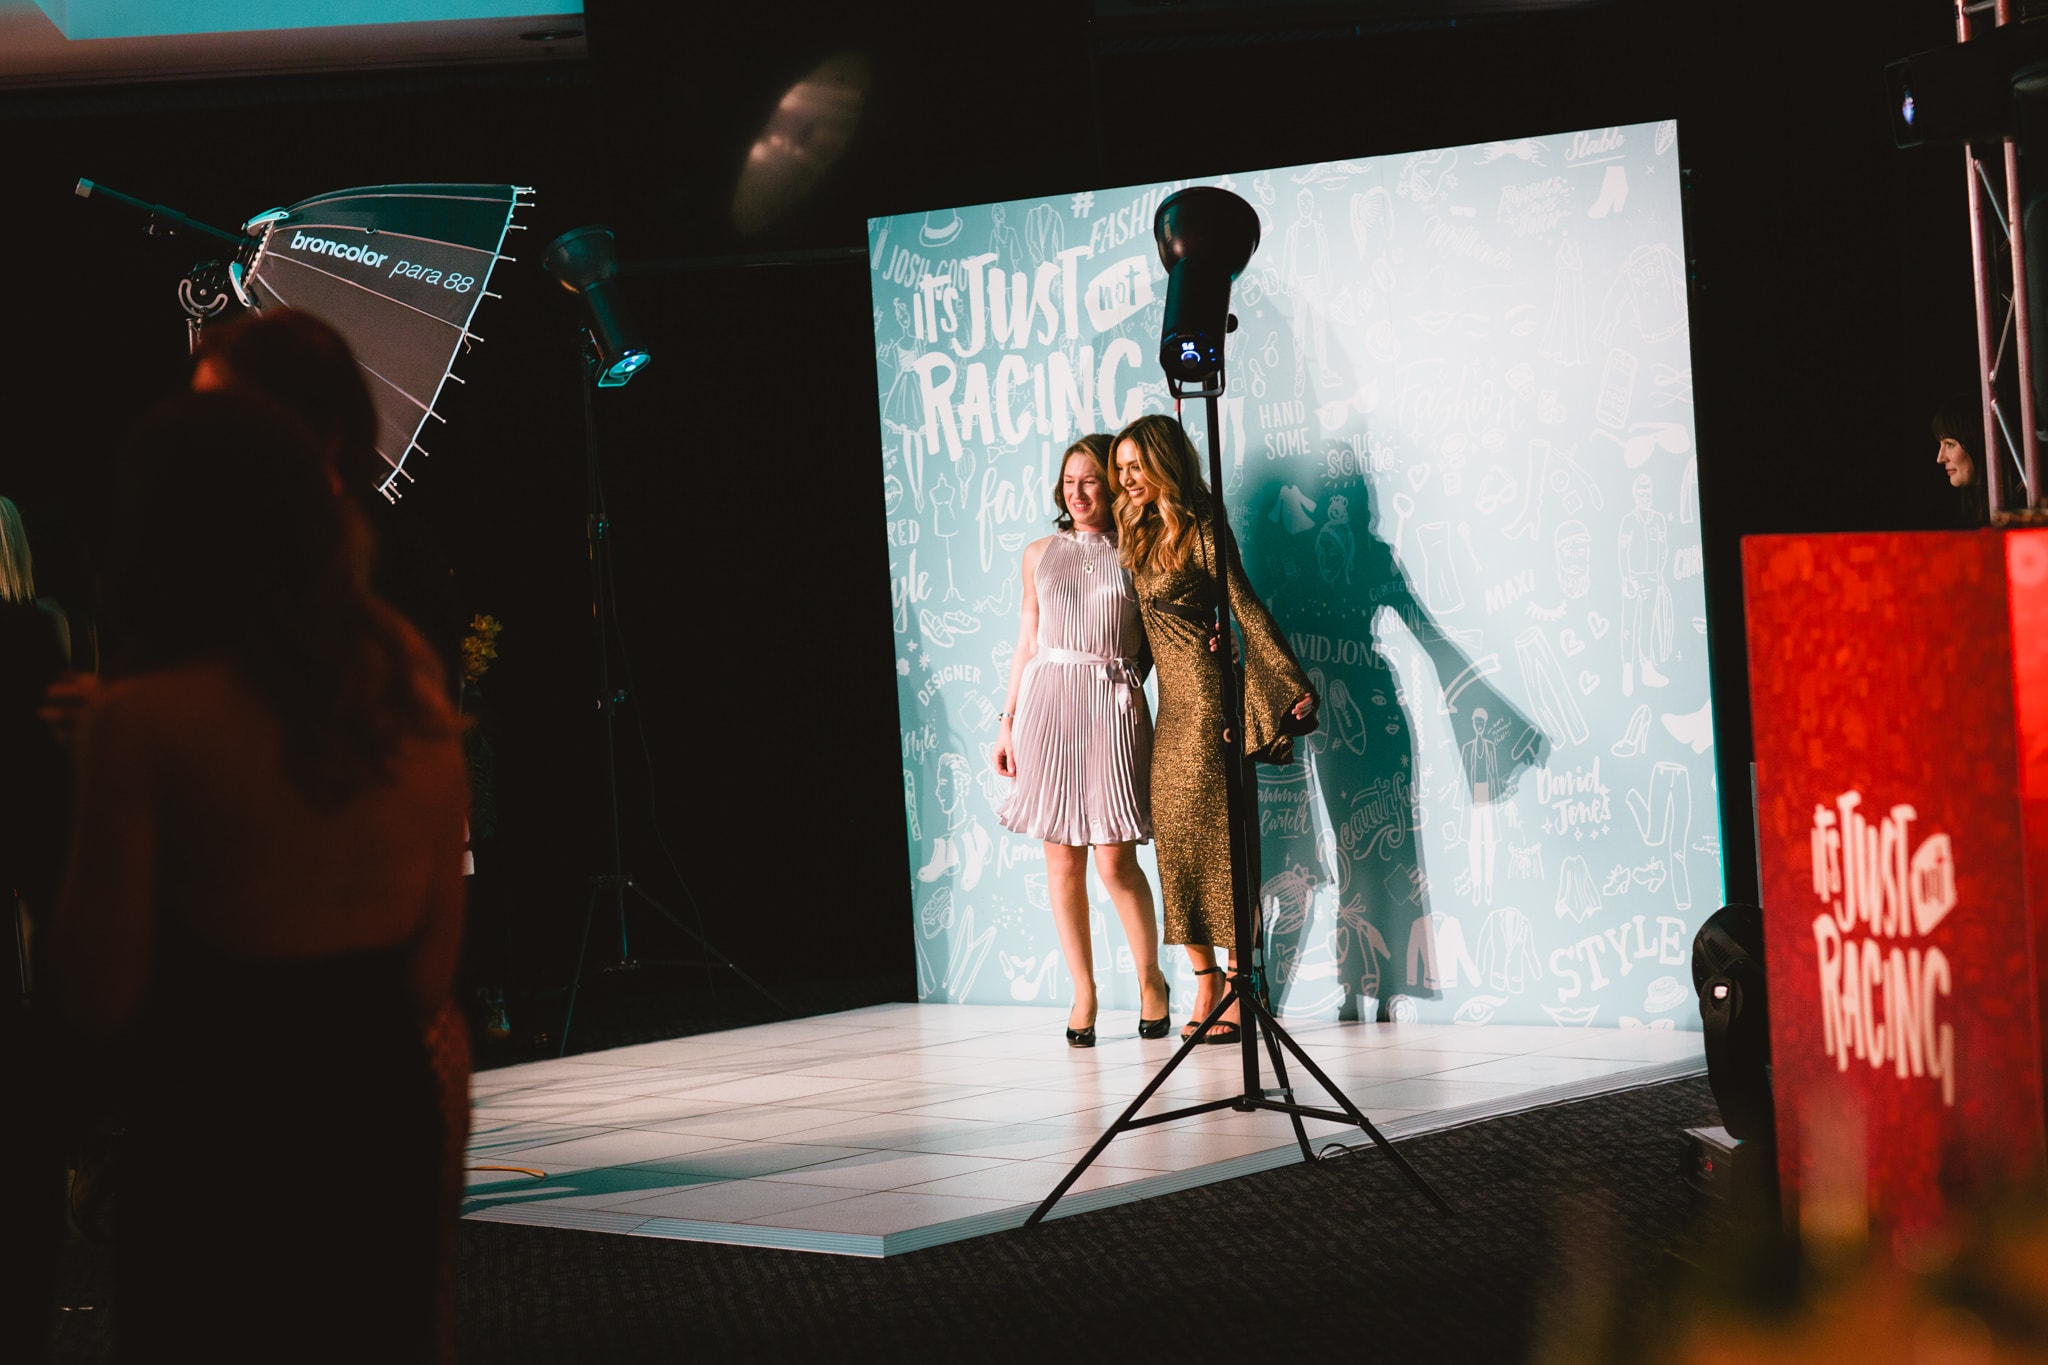 fashion photoshoot on stage at product launch party in melbourne